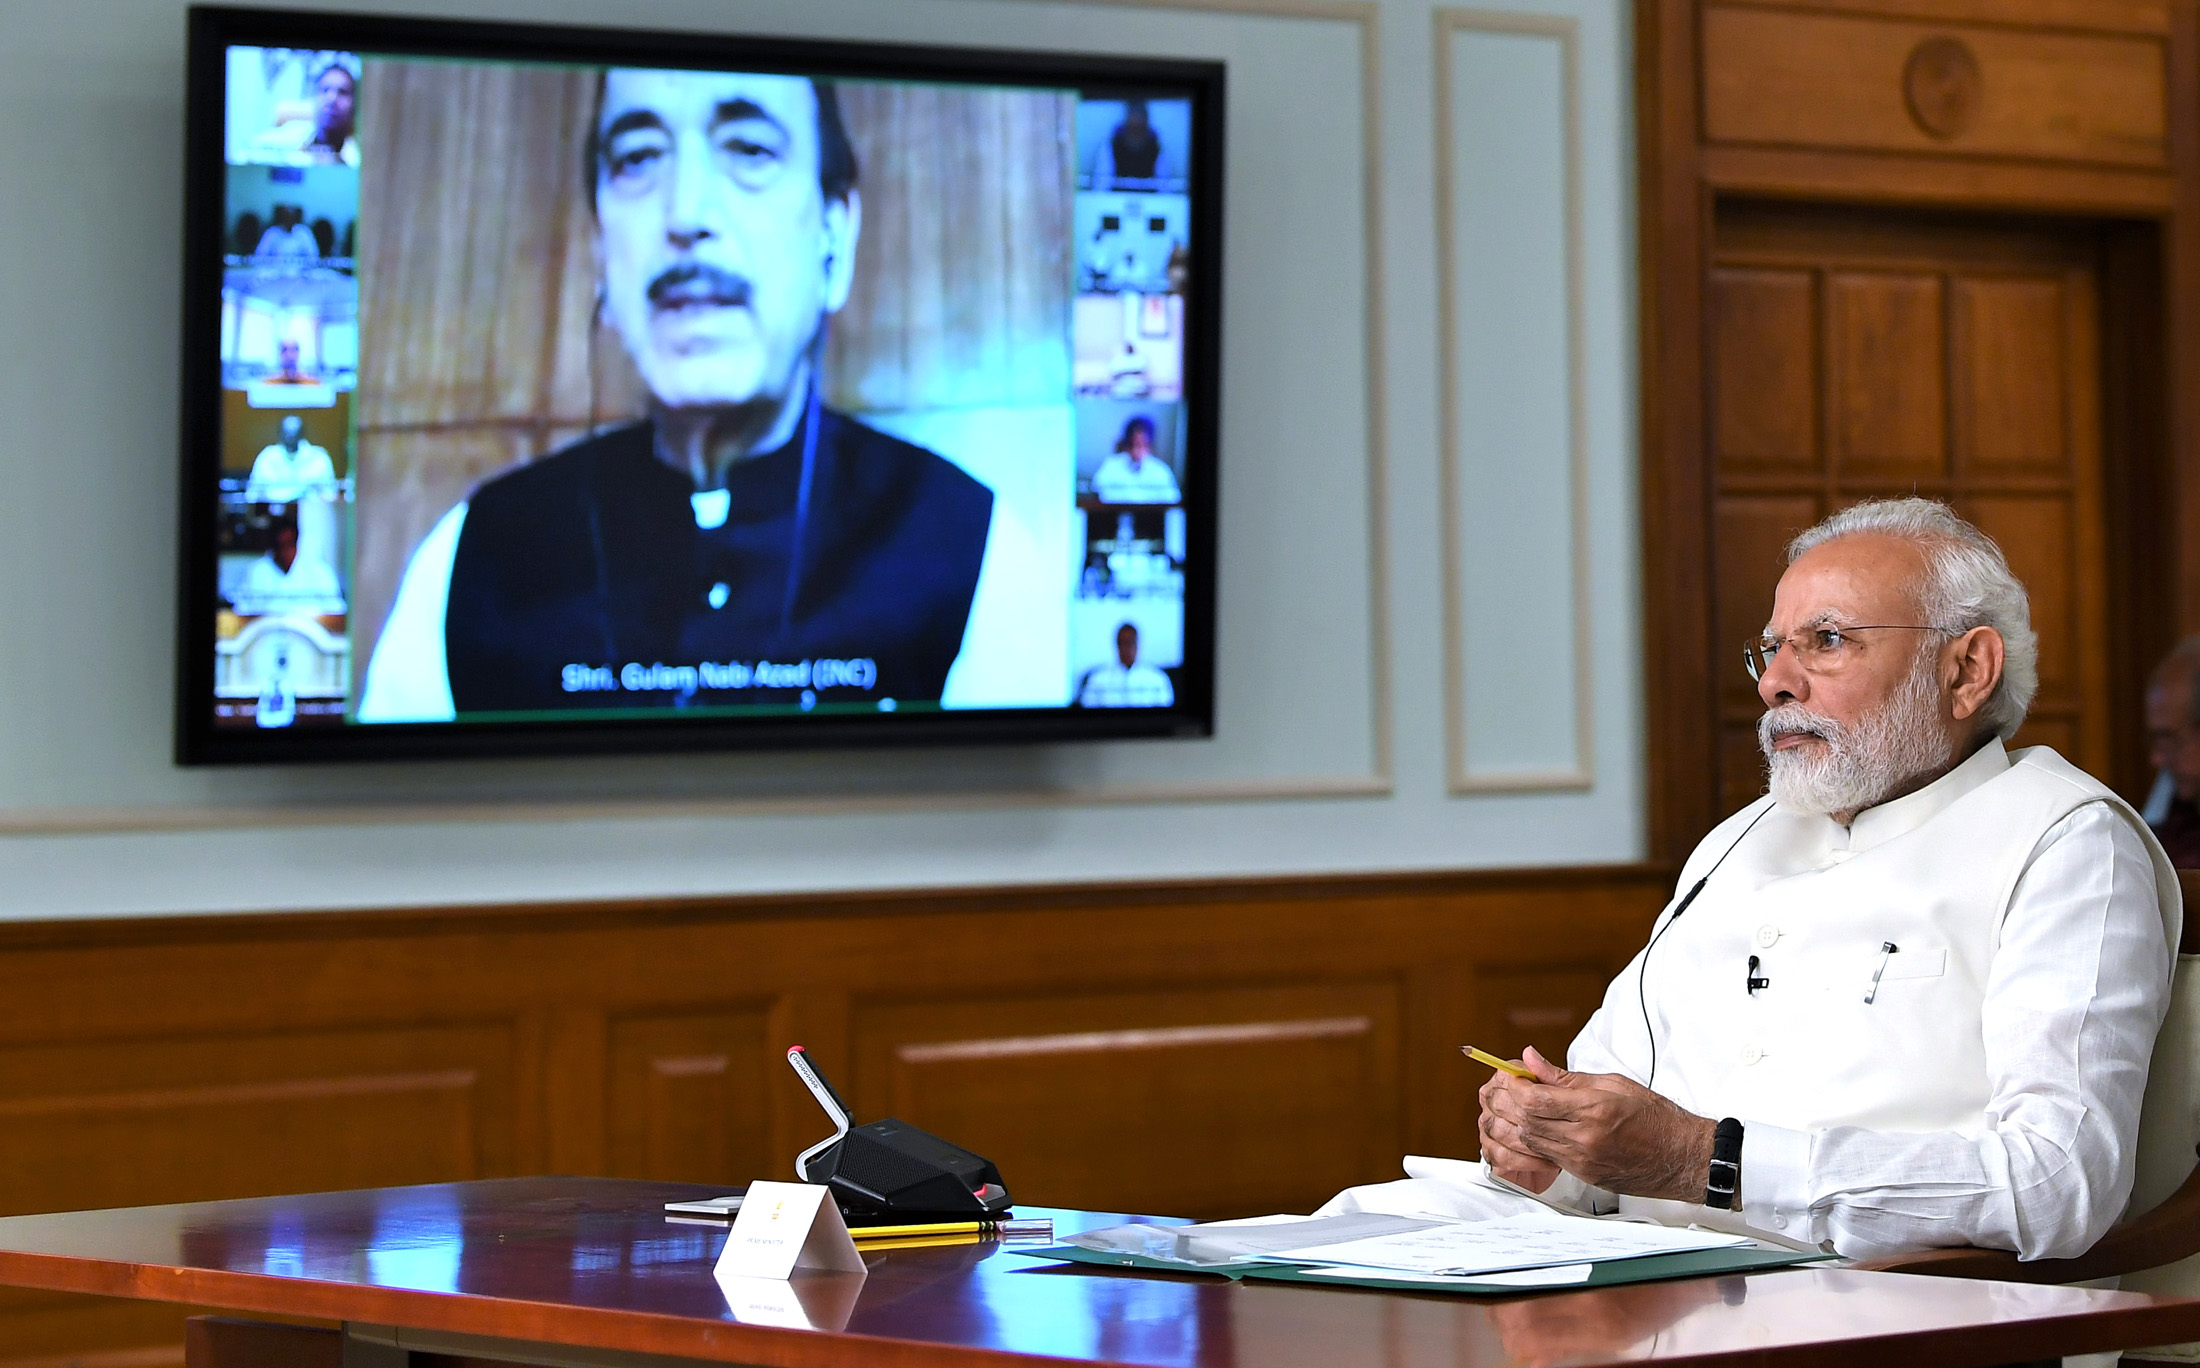 The Prime Minister, Shri Narendra Modi interacting with the leaders of political parties in Parliament on COVID-19 via video conference, in New Delhi on April 08, 2020.